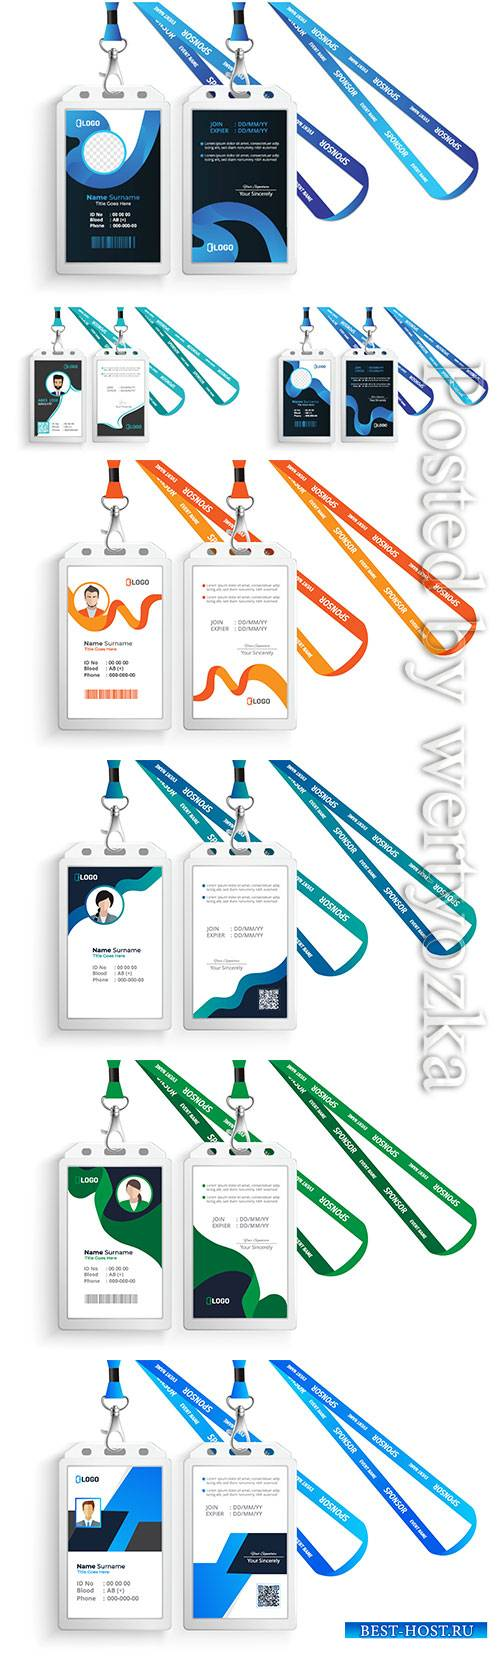 Id vector card with lanyard set isolated illustration